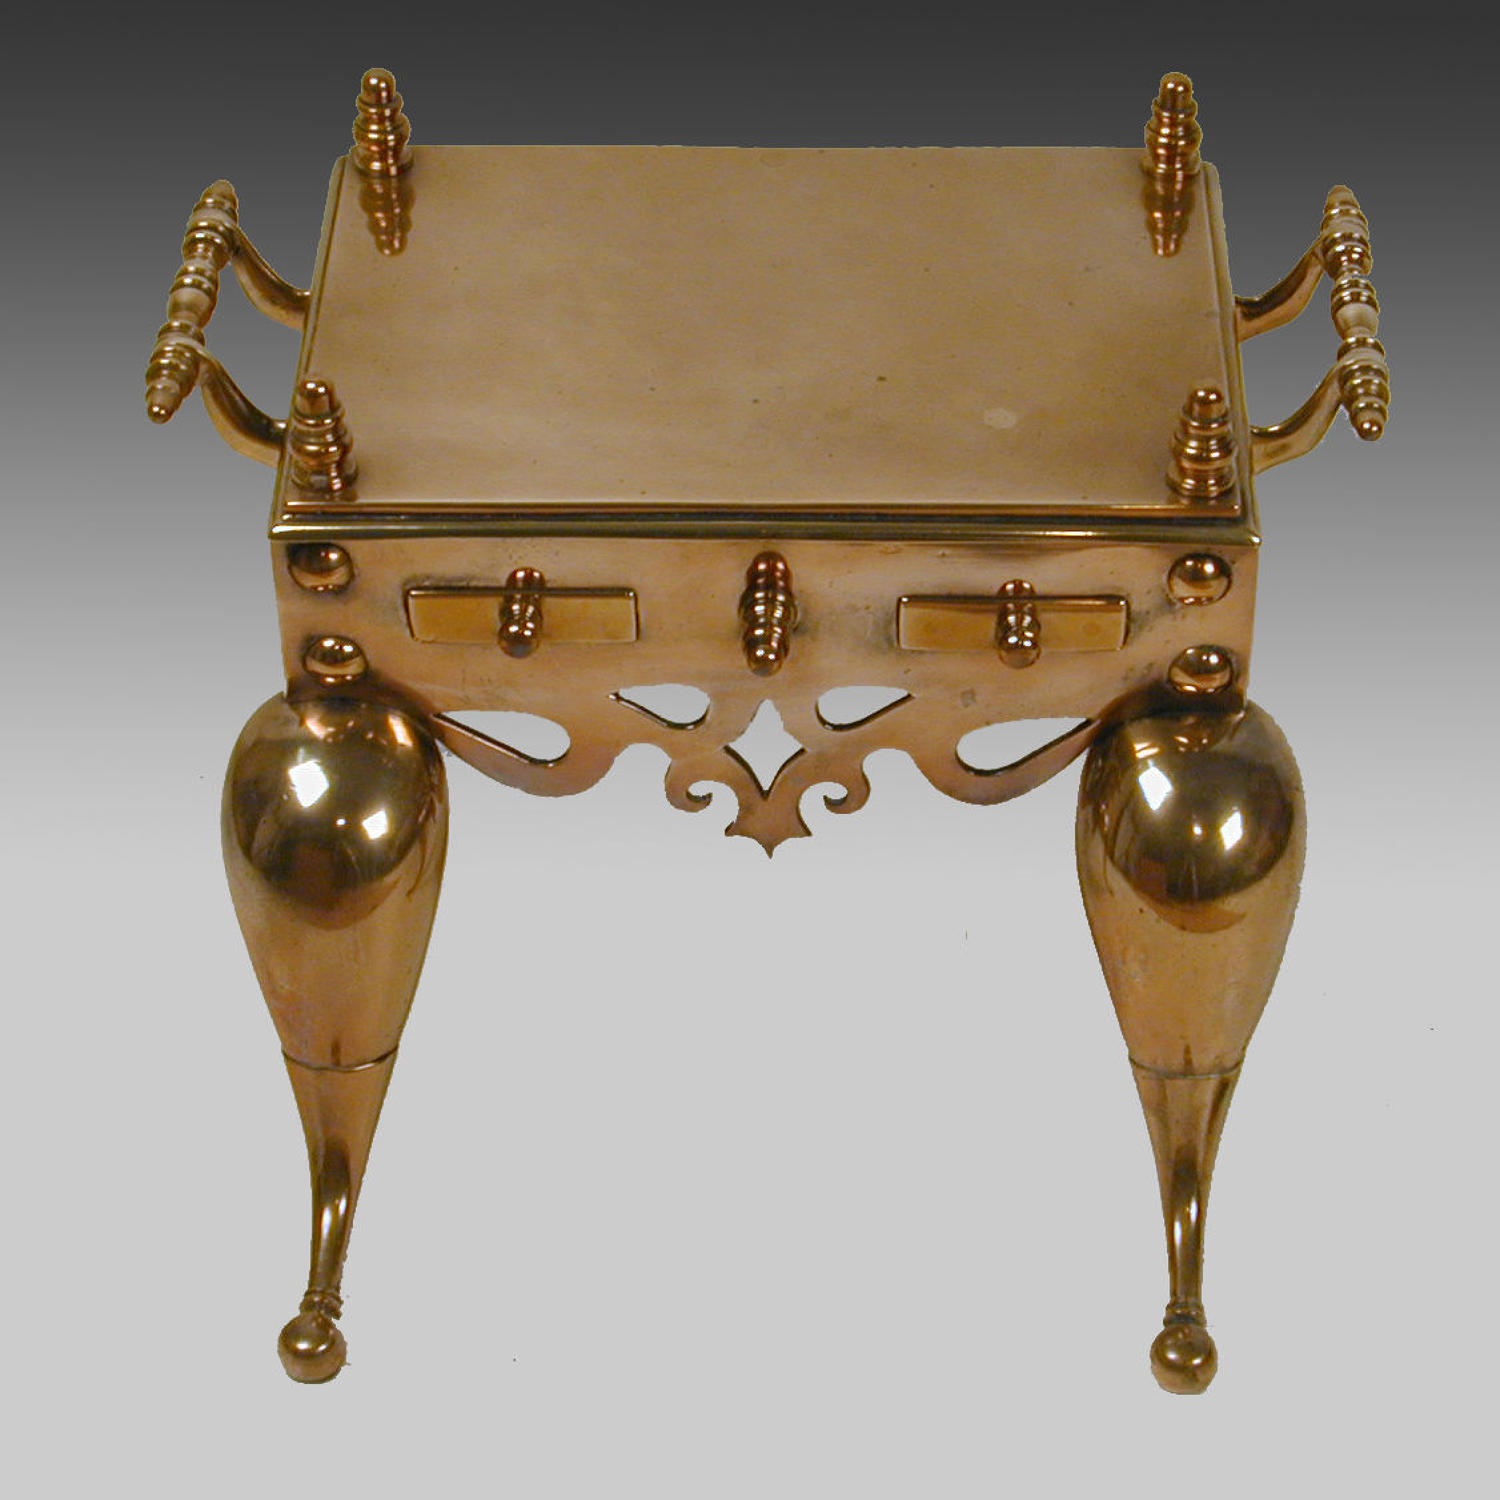 Cast brass footman or hearth trivet